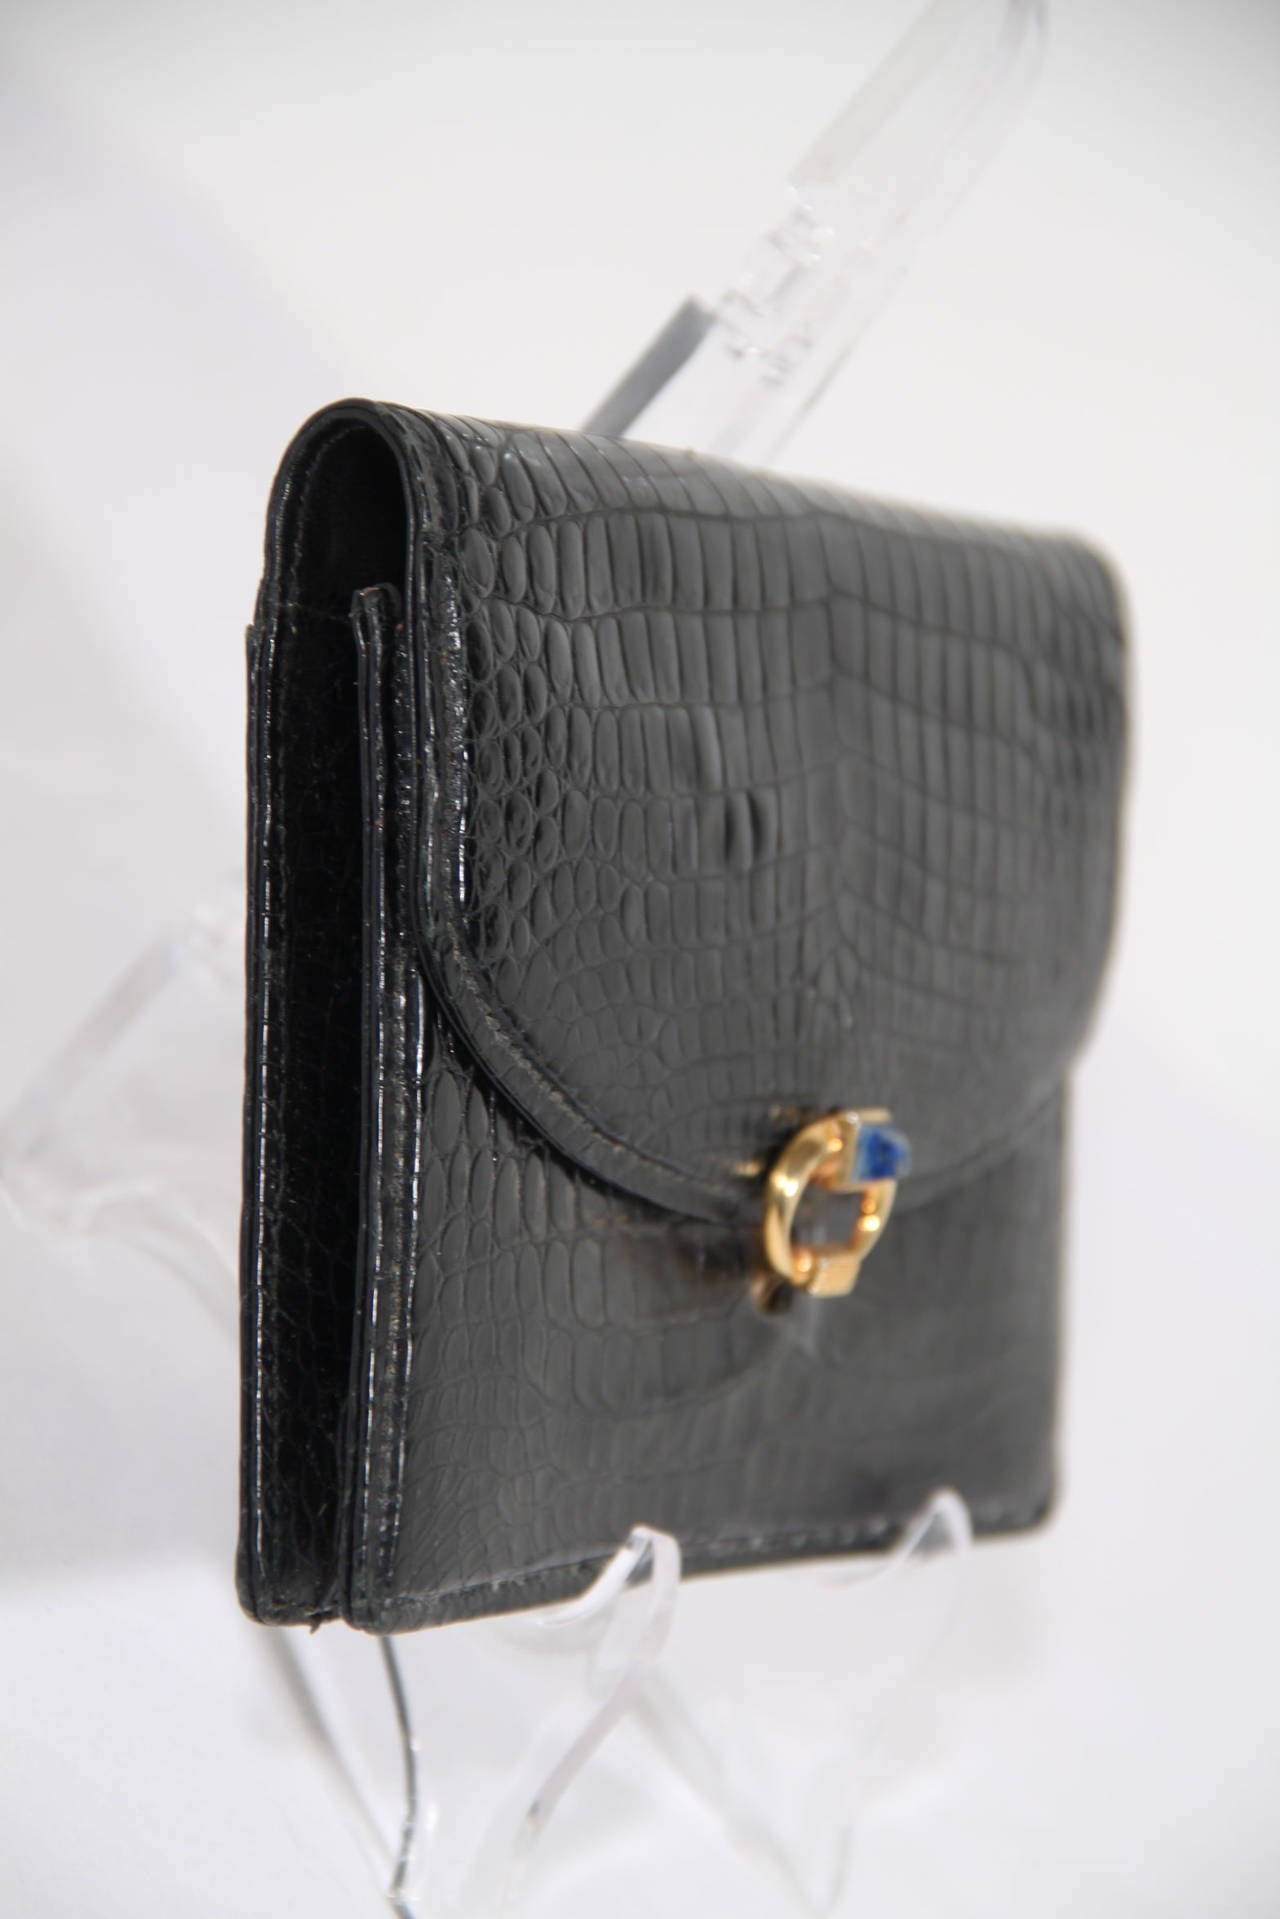 Clutches-Evening-Bags. For a night on the town, nothing stores your essentials more stylishly than evening bags and clutches. The small size of clutch purses permits you to downsize to the most important items for your evening—such as your ID, cash and credit cards.